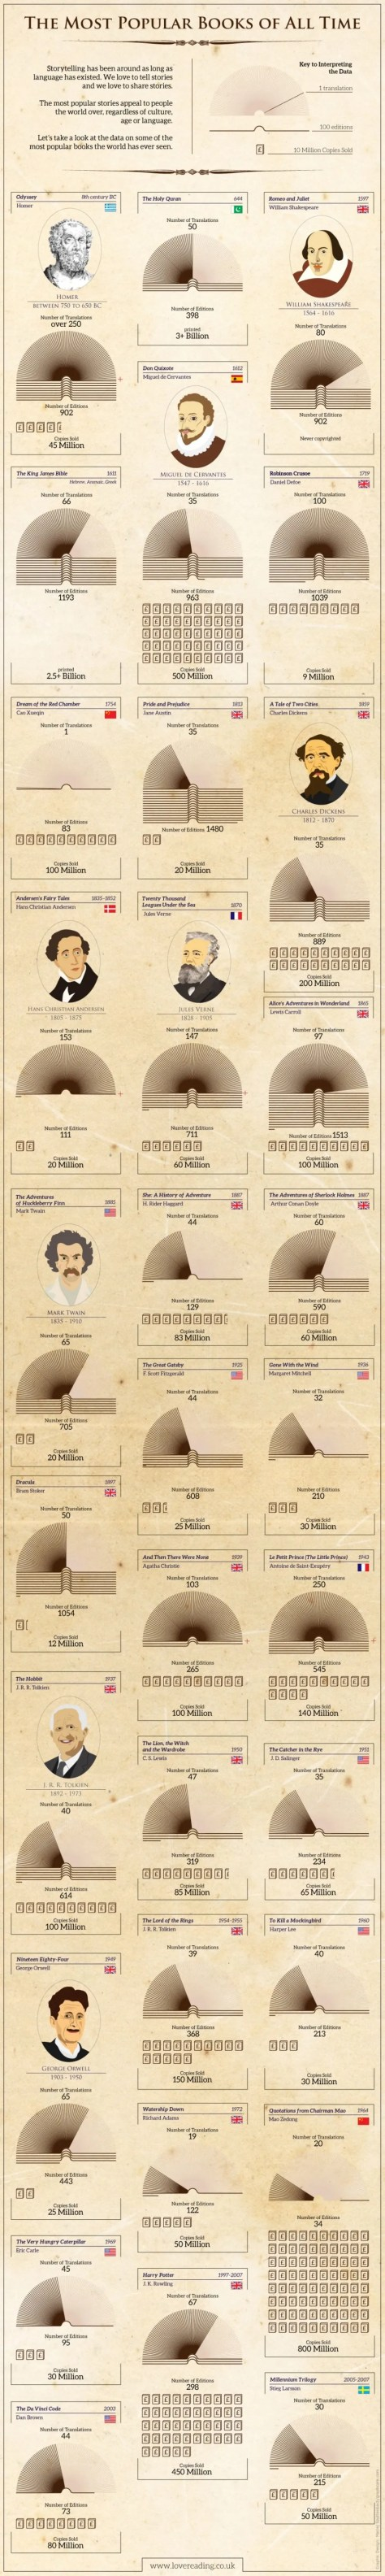 The Most Popular Books Infographic